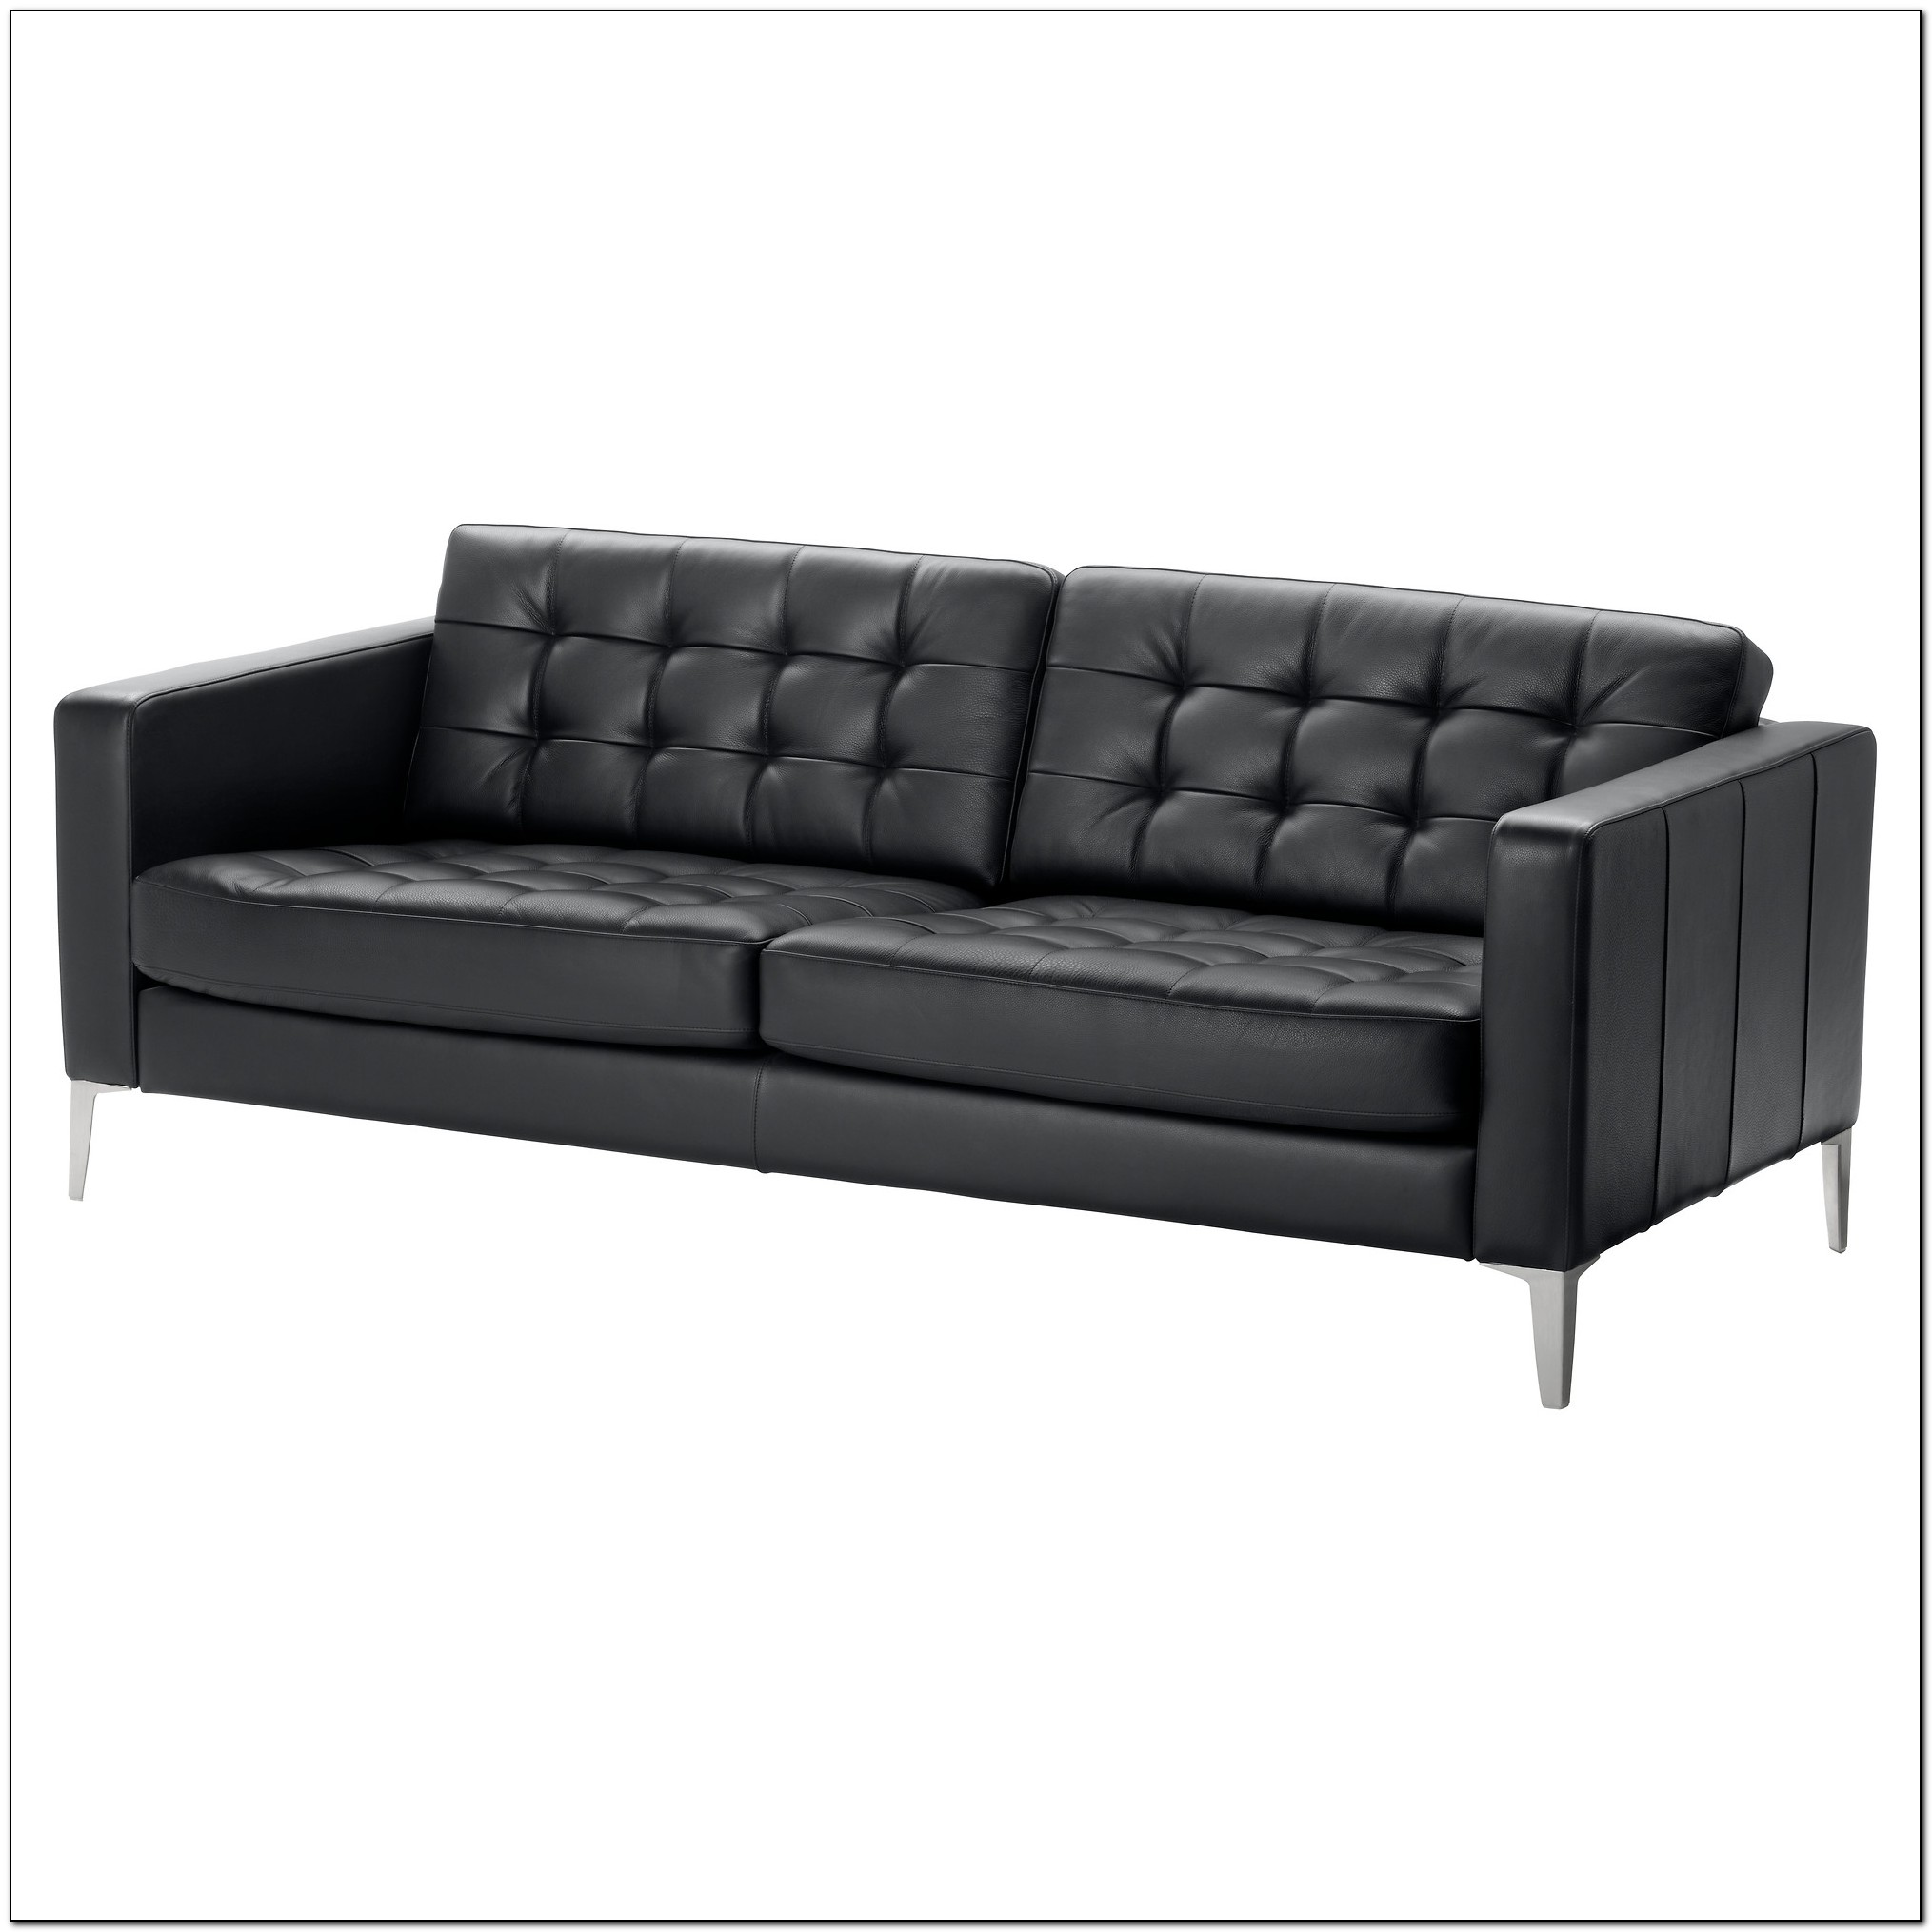 small sleeper sofa ikea sofa home design ideas. Black Bedroom Furniture Sets. Home Design Ideas